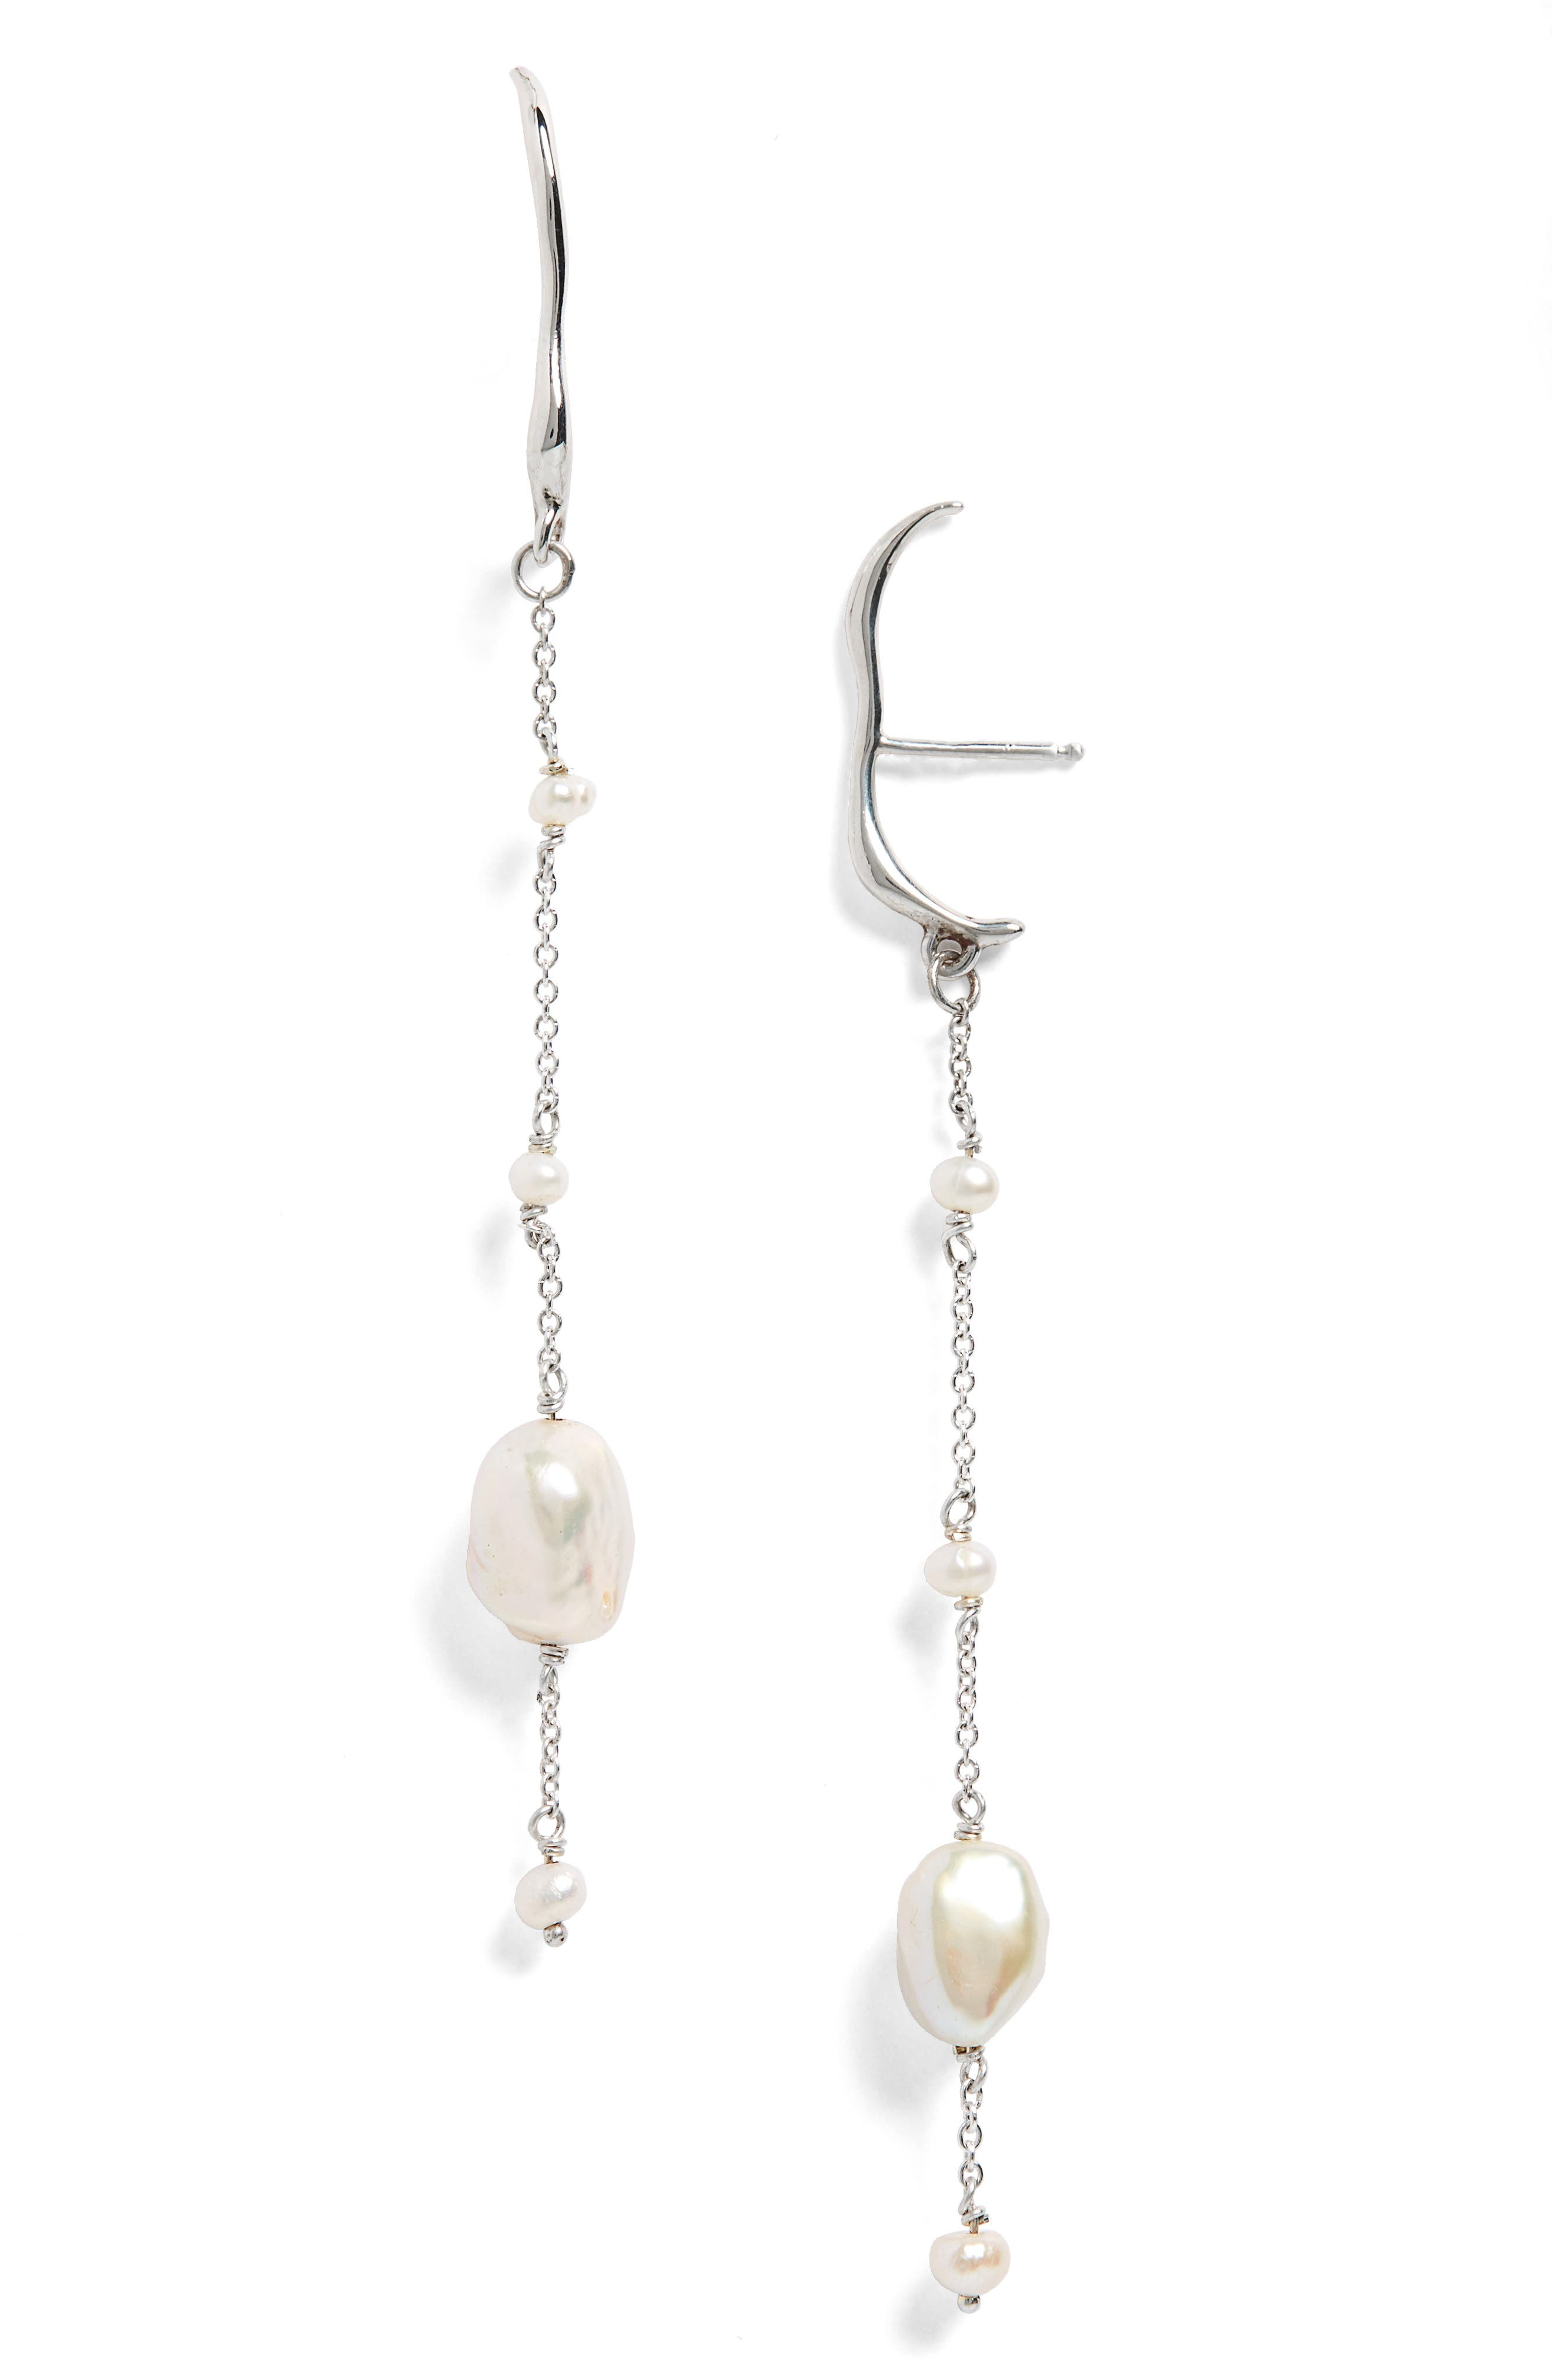 Aura Cultured Pearl Drop Earrings,                             Main thumbnail 1, color,                             STERLING SILVER/ WHITE PEARL